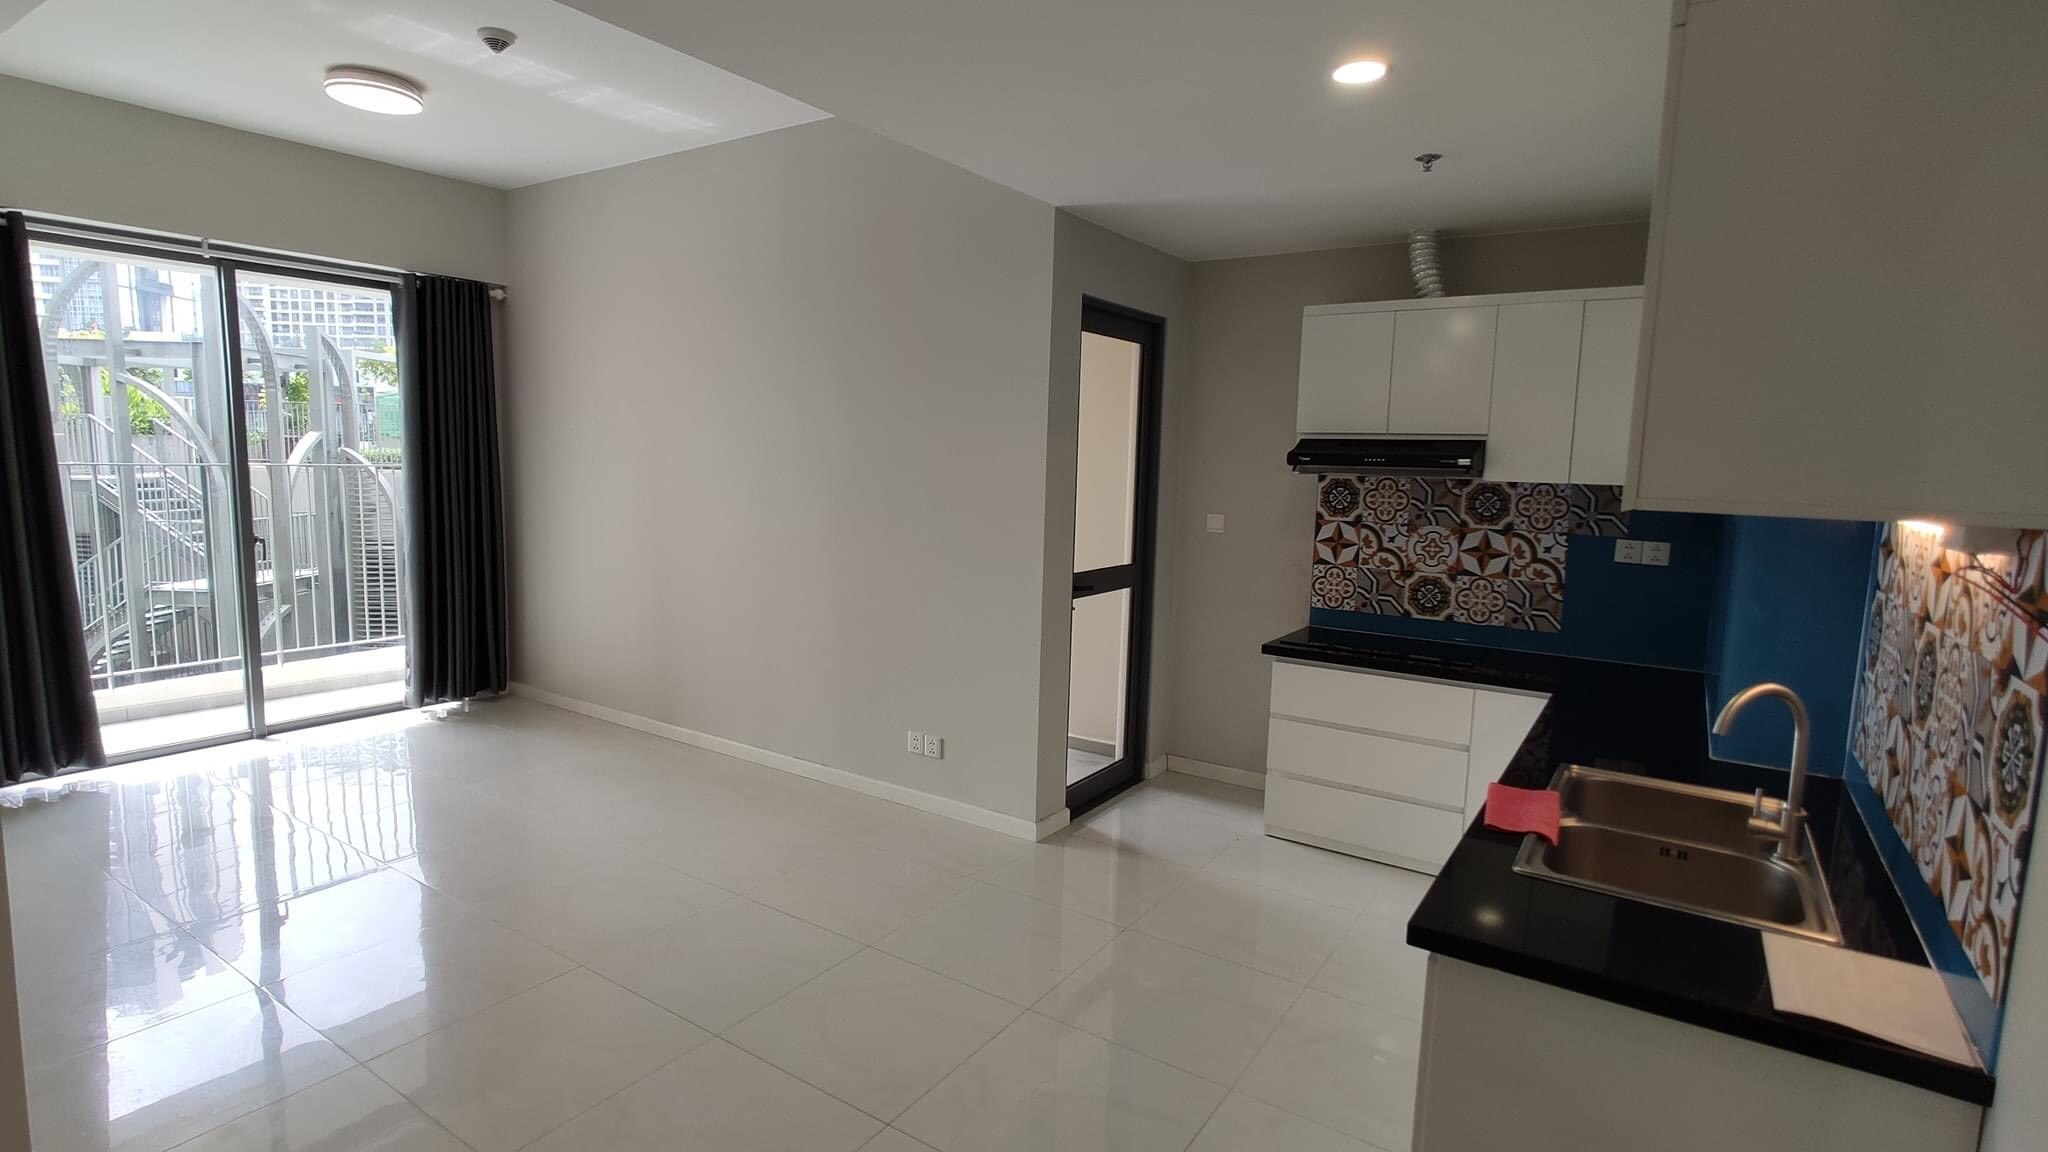 MAP95571 - Apartment for rent - Masteri An Phu